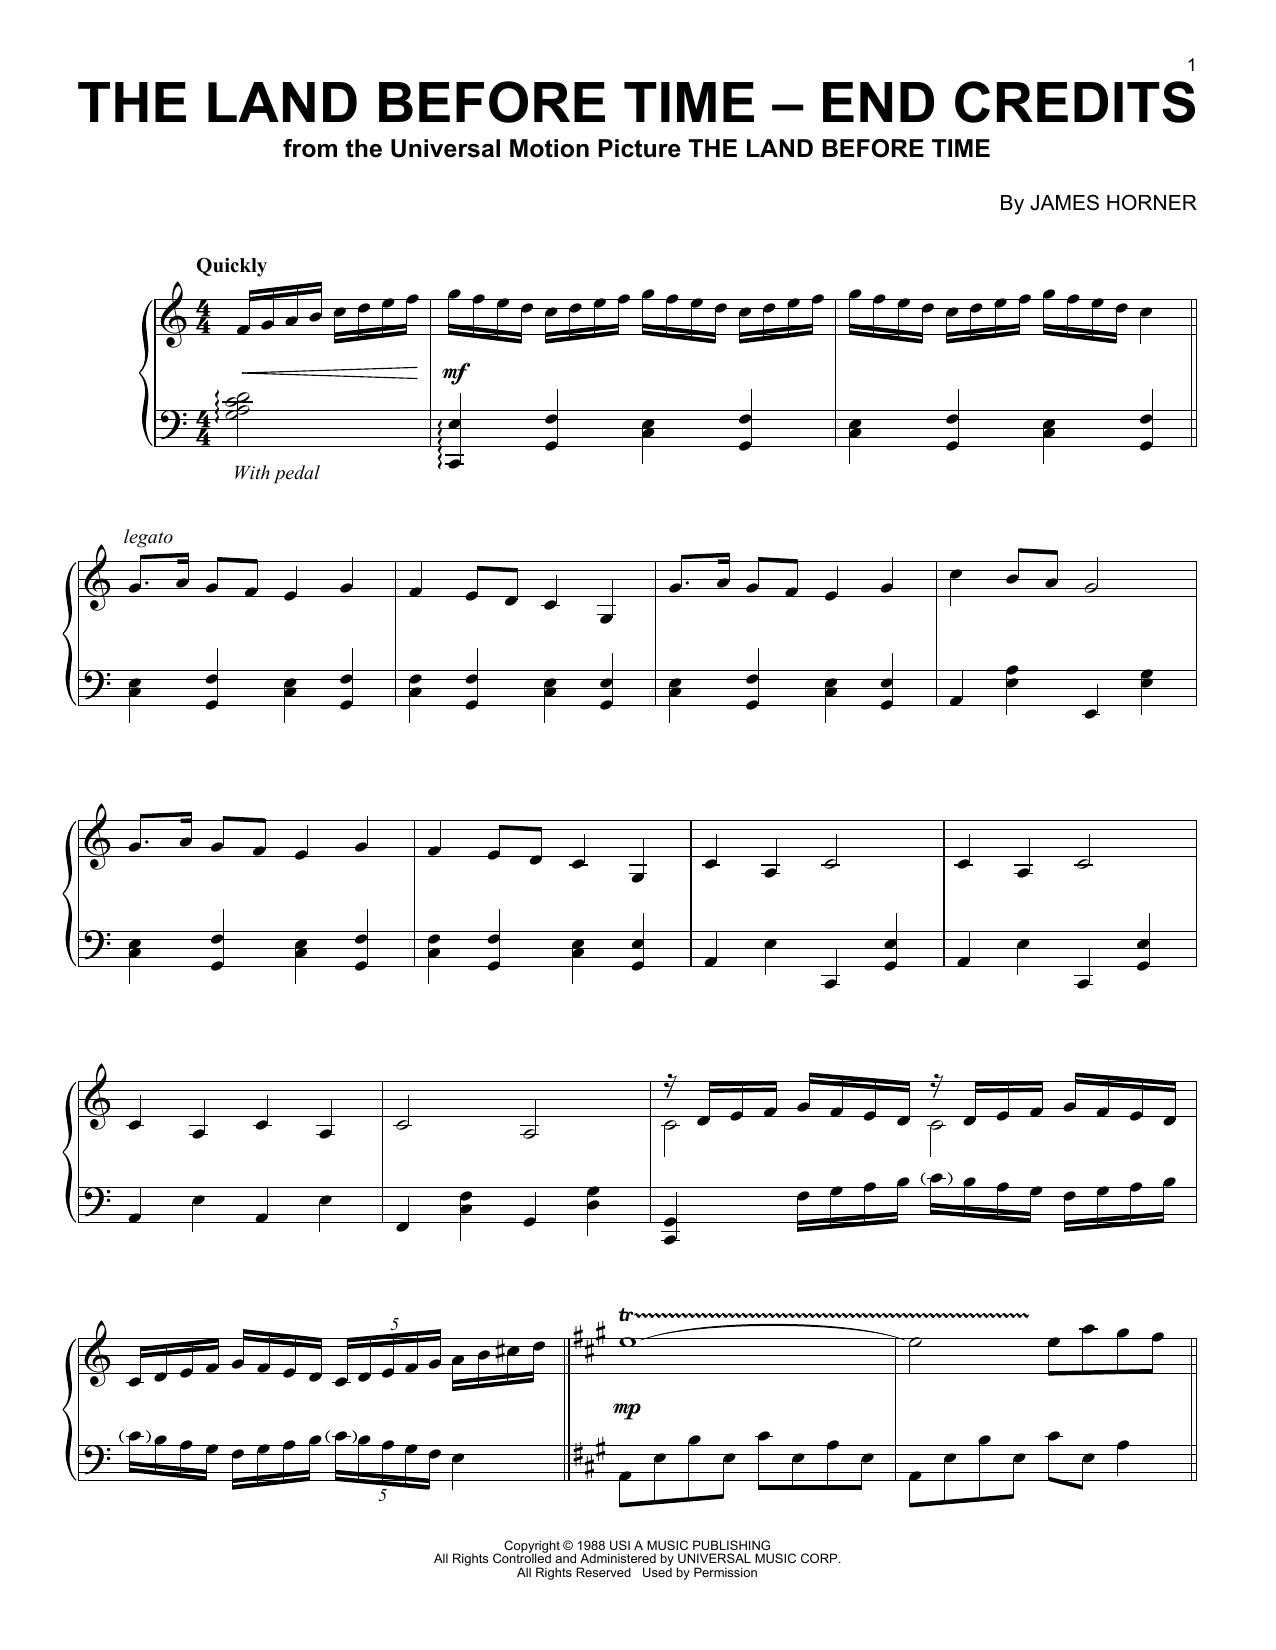 The Land Before Time - End Credits sheet music